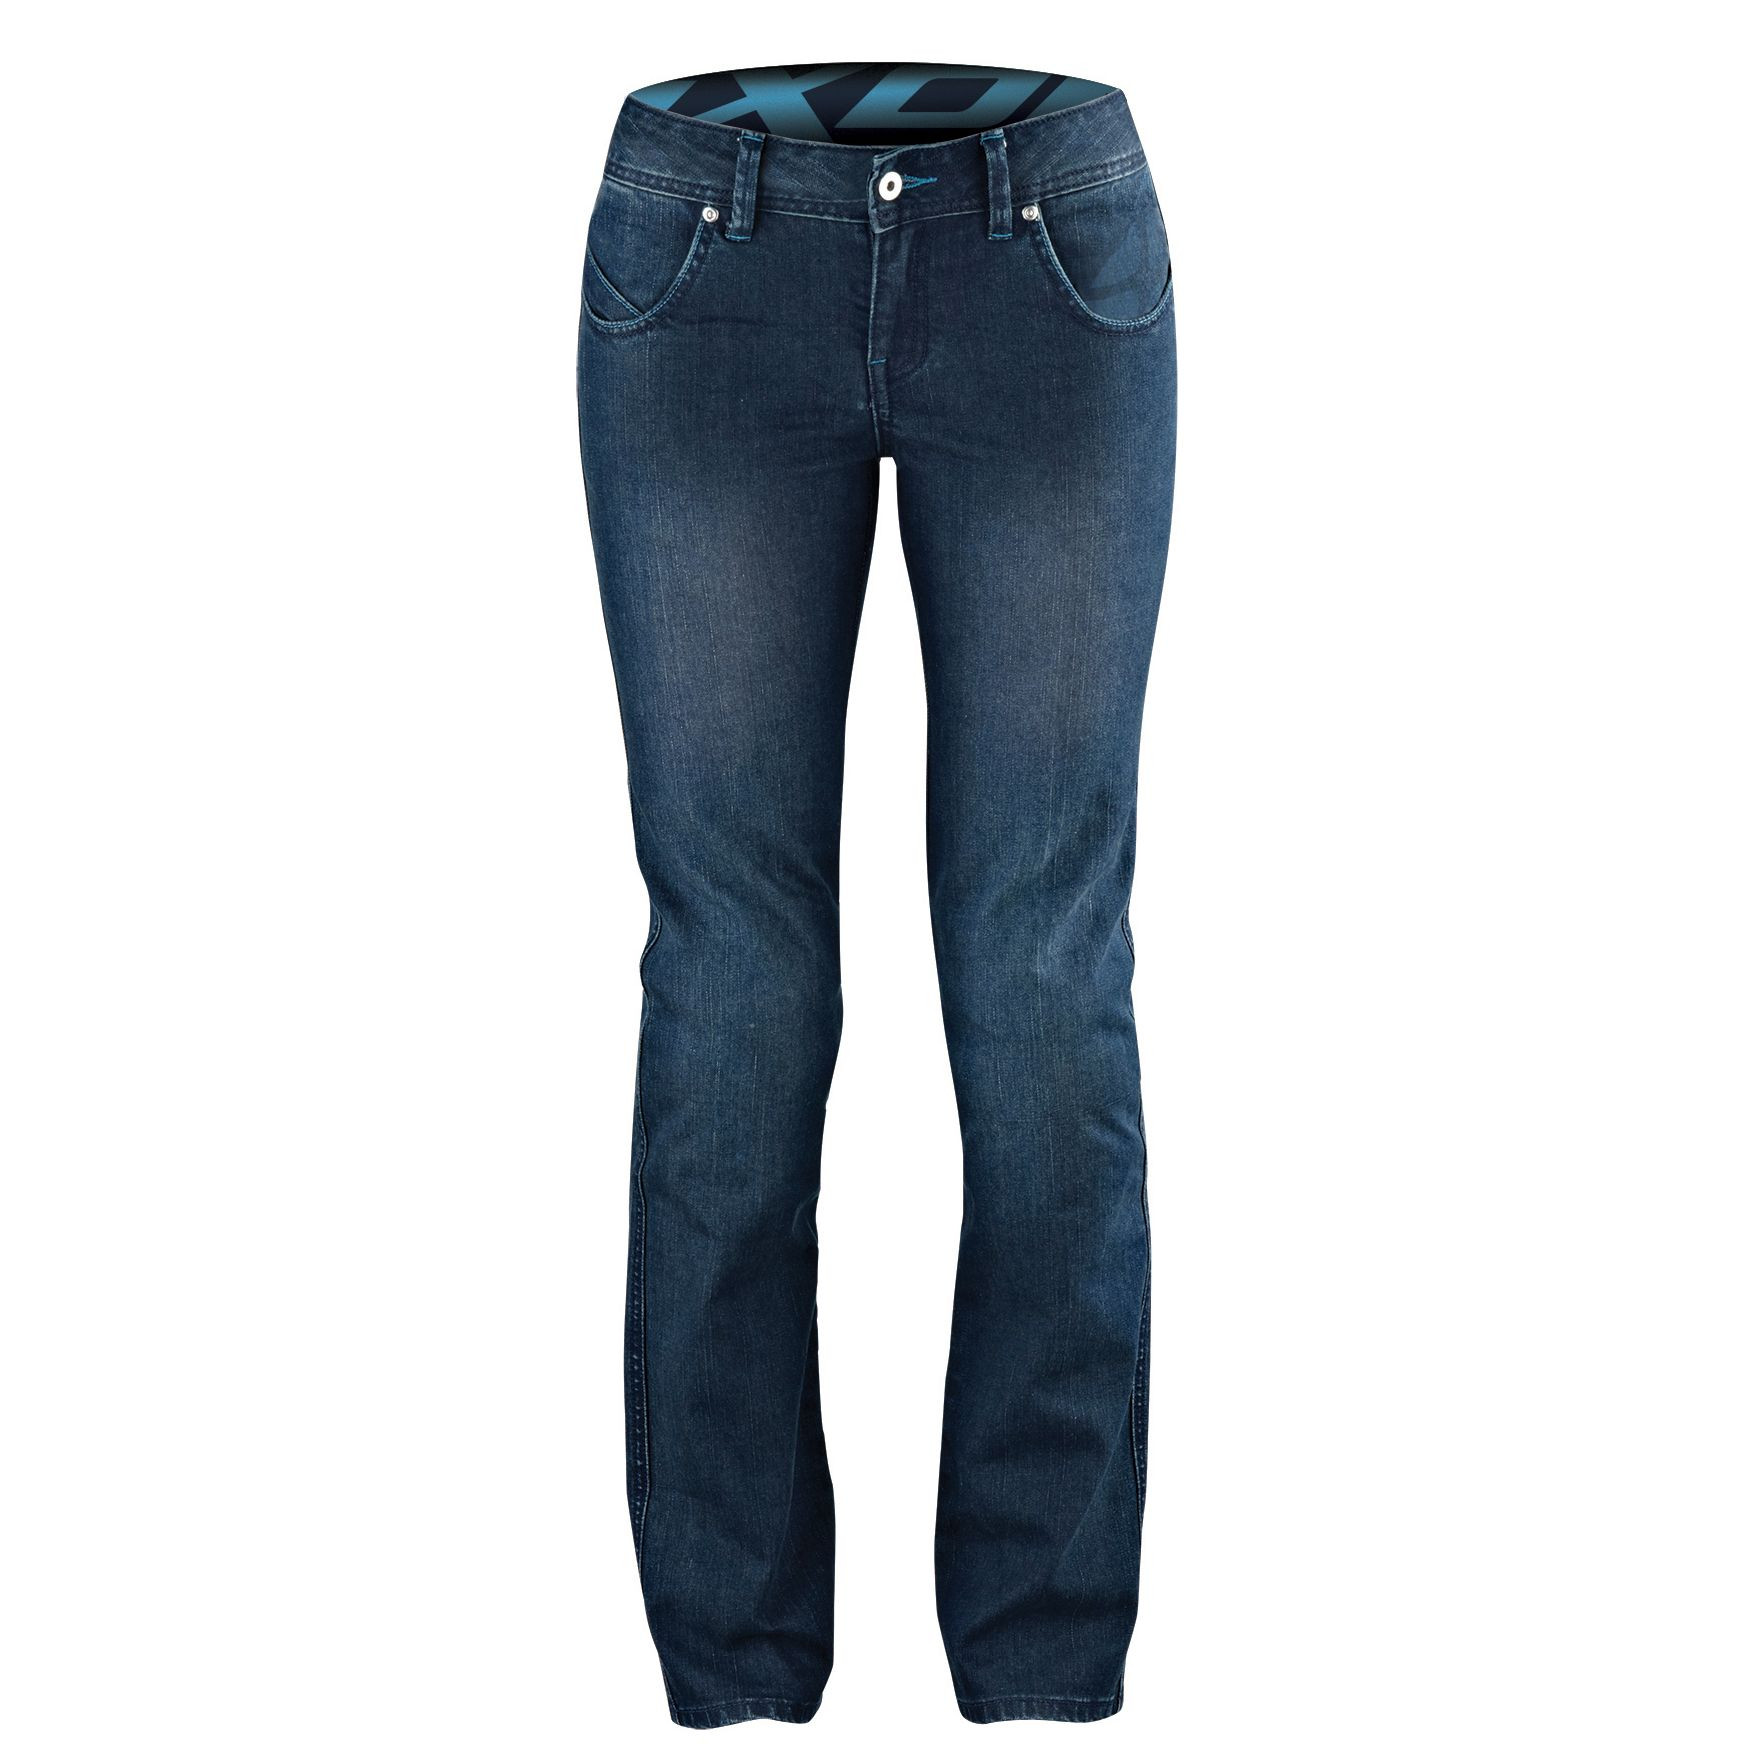 Ixon woman jeans Britney with Kevlar reinforcements navy